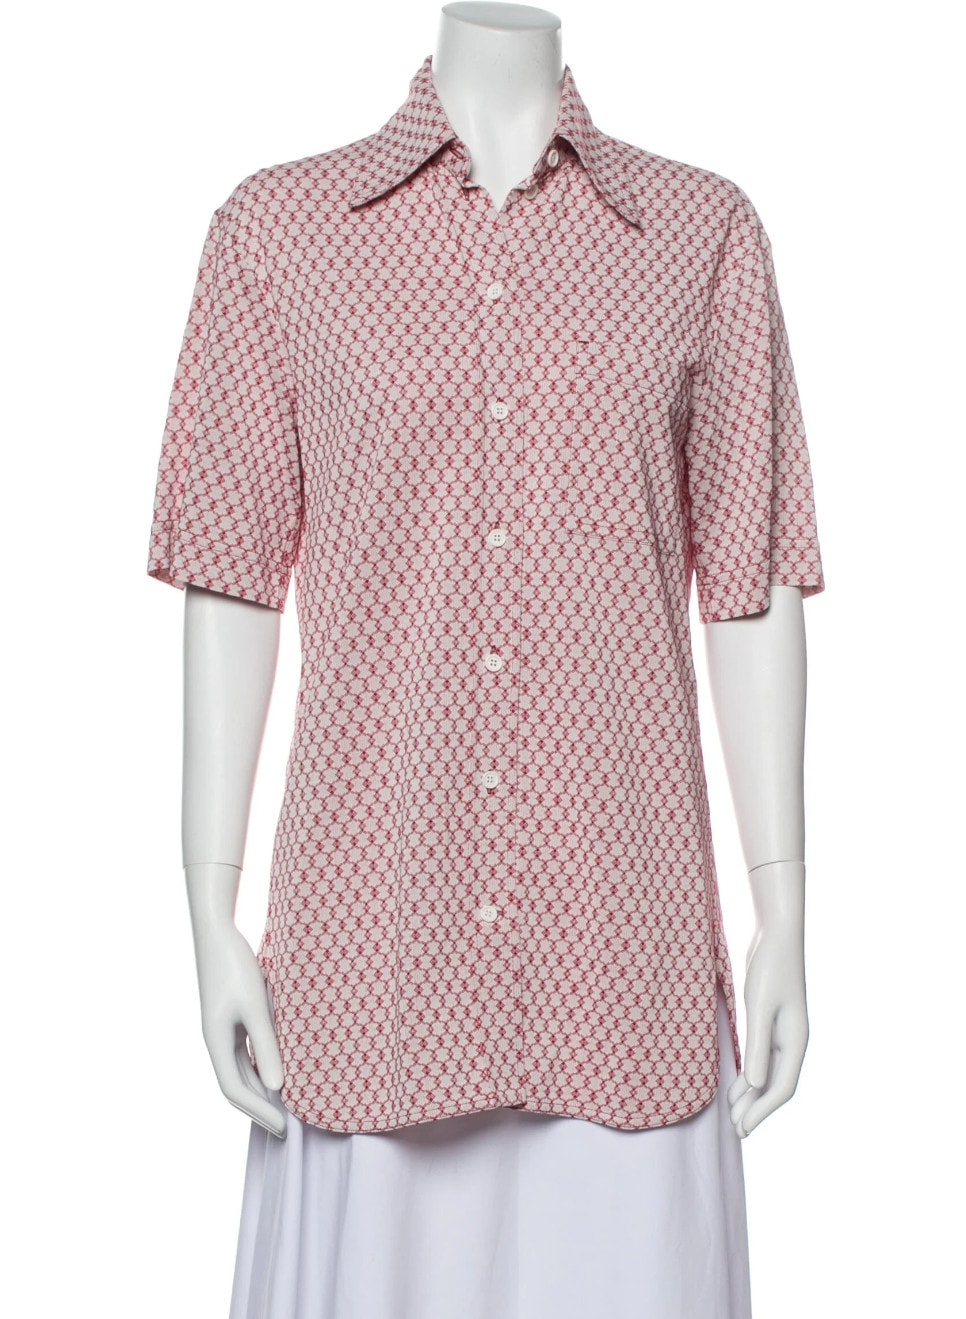 Printed Short Sleeve Button-Up Top